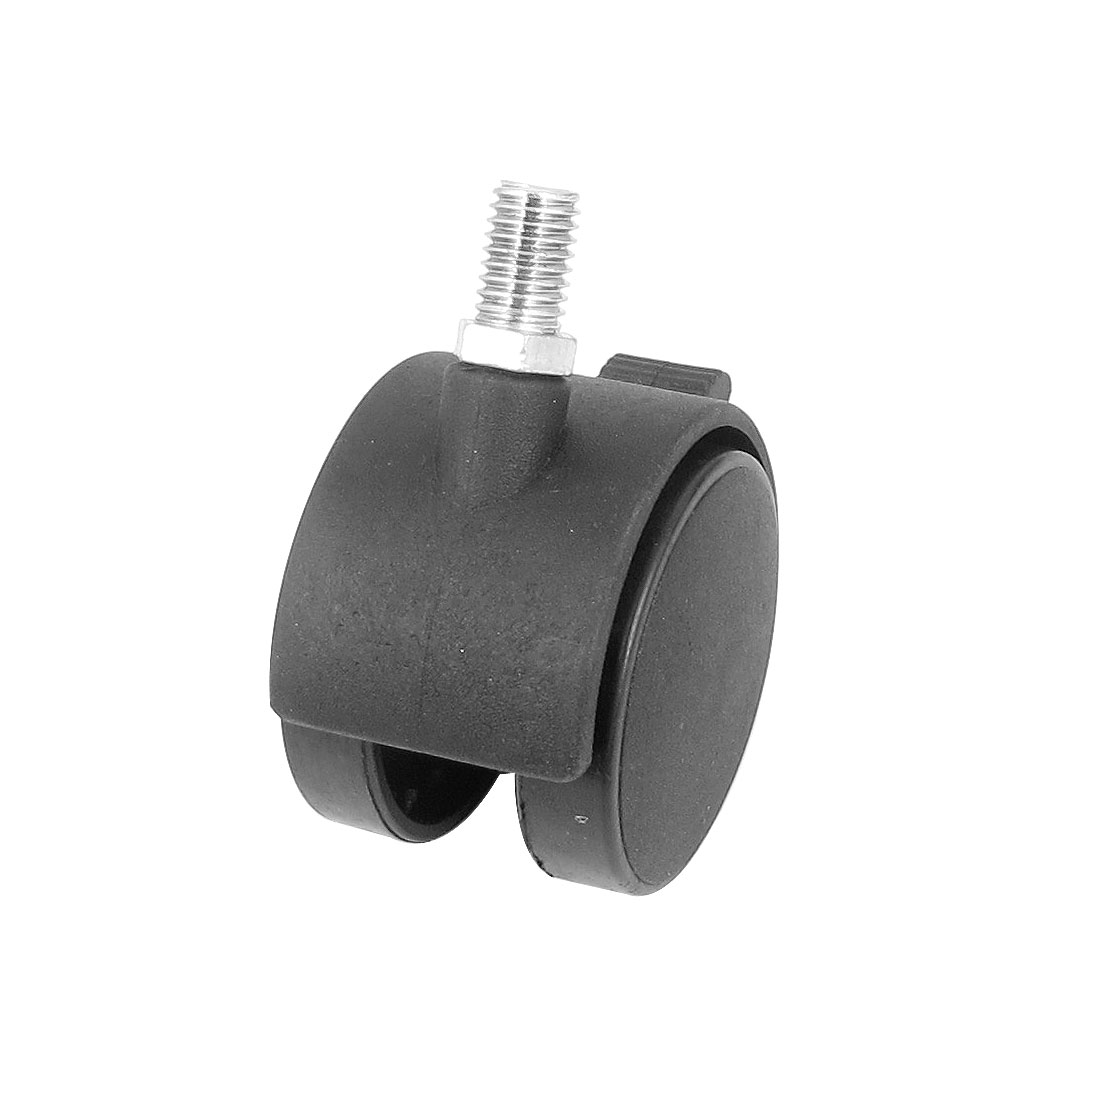 Table Chair 10mm Threaded Stem Connector Plastic Double Wheel 360 Degree Rotation Swivel Brake Lock Caster